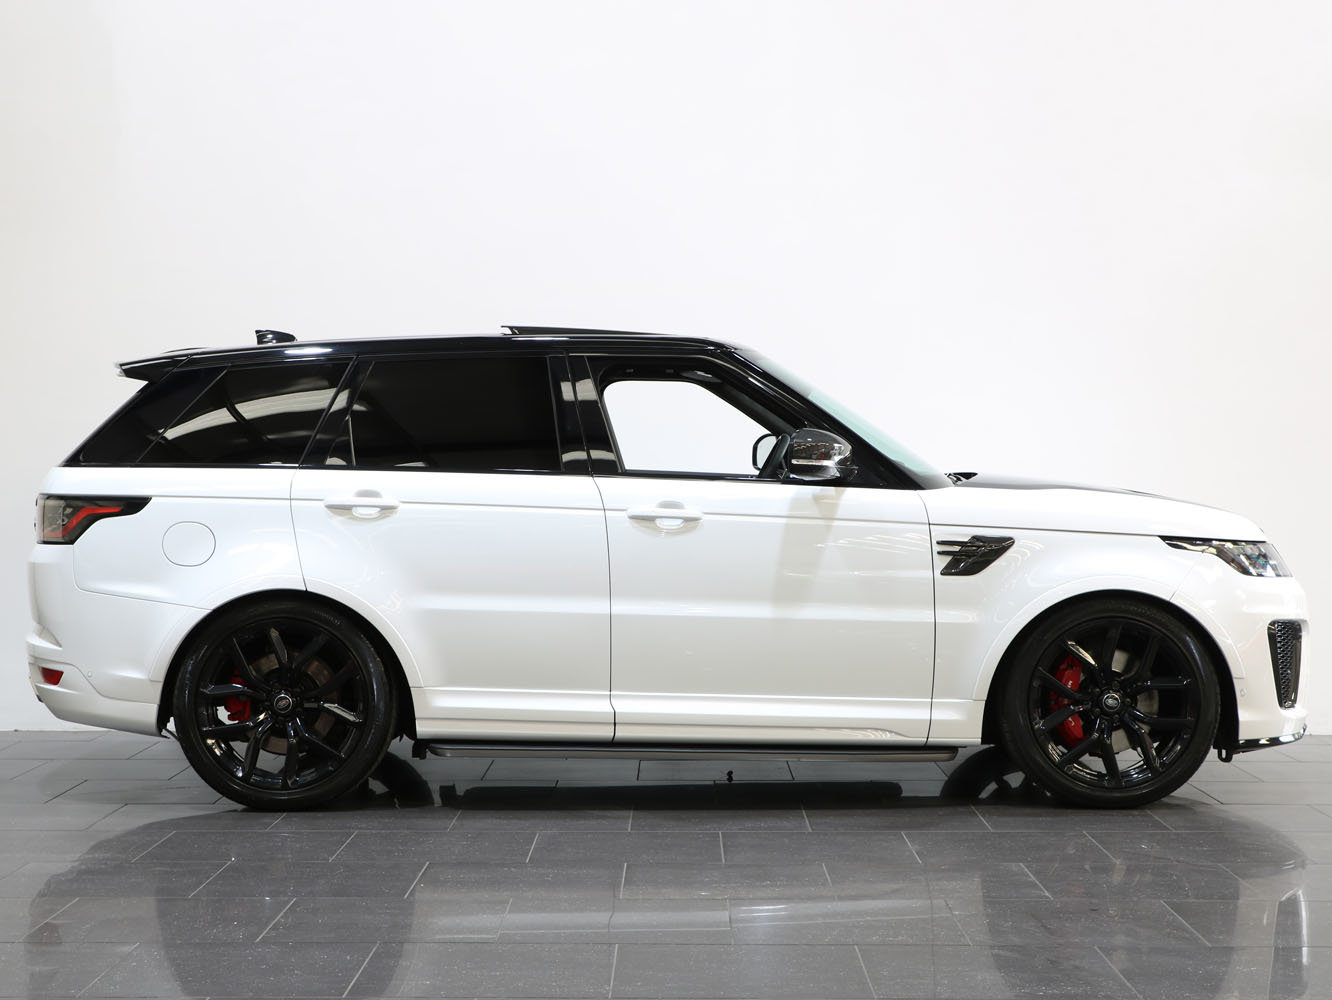 2018 18 18 RANGE ROVER 5.0 V8 SUPERCHARGED SVR AUTO For Sale (picture 2 of 6)